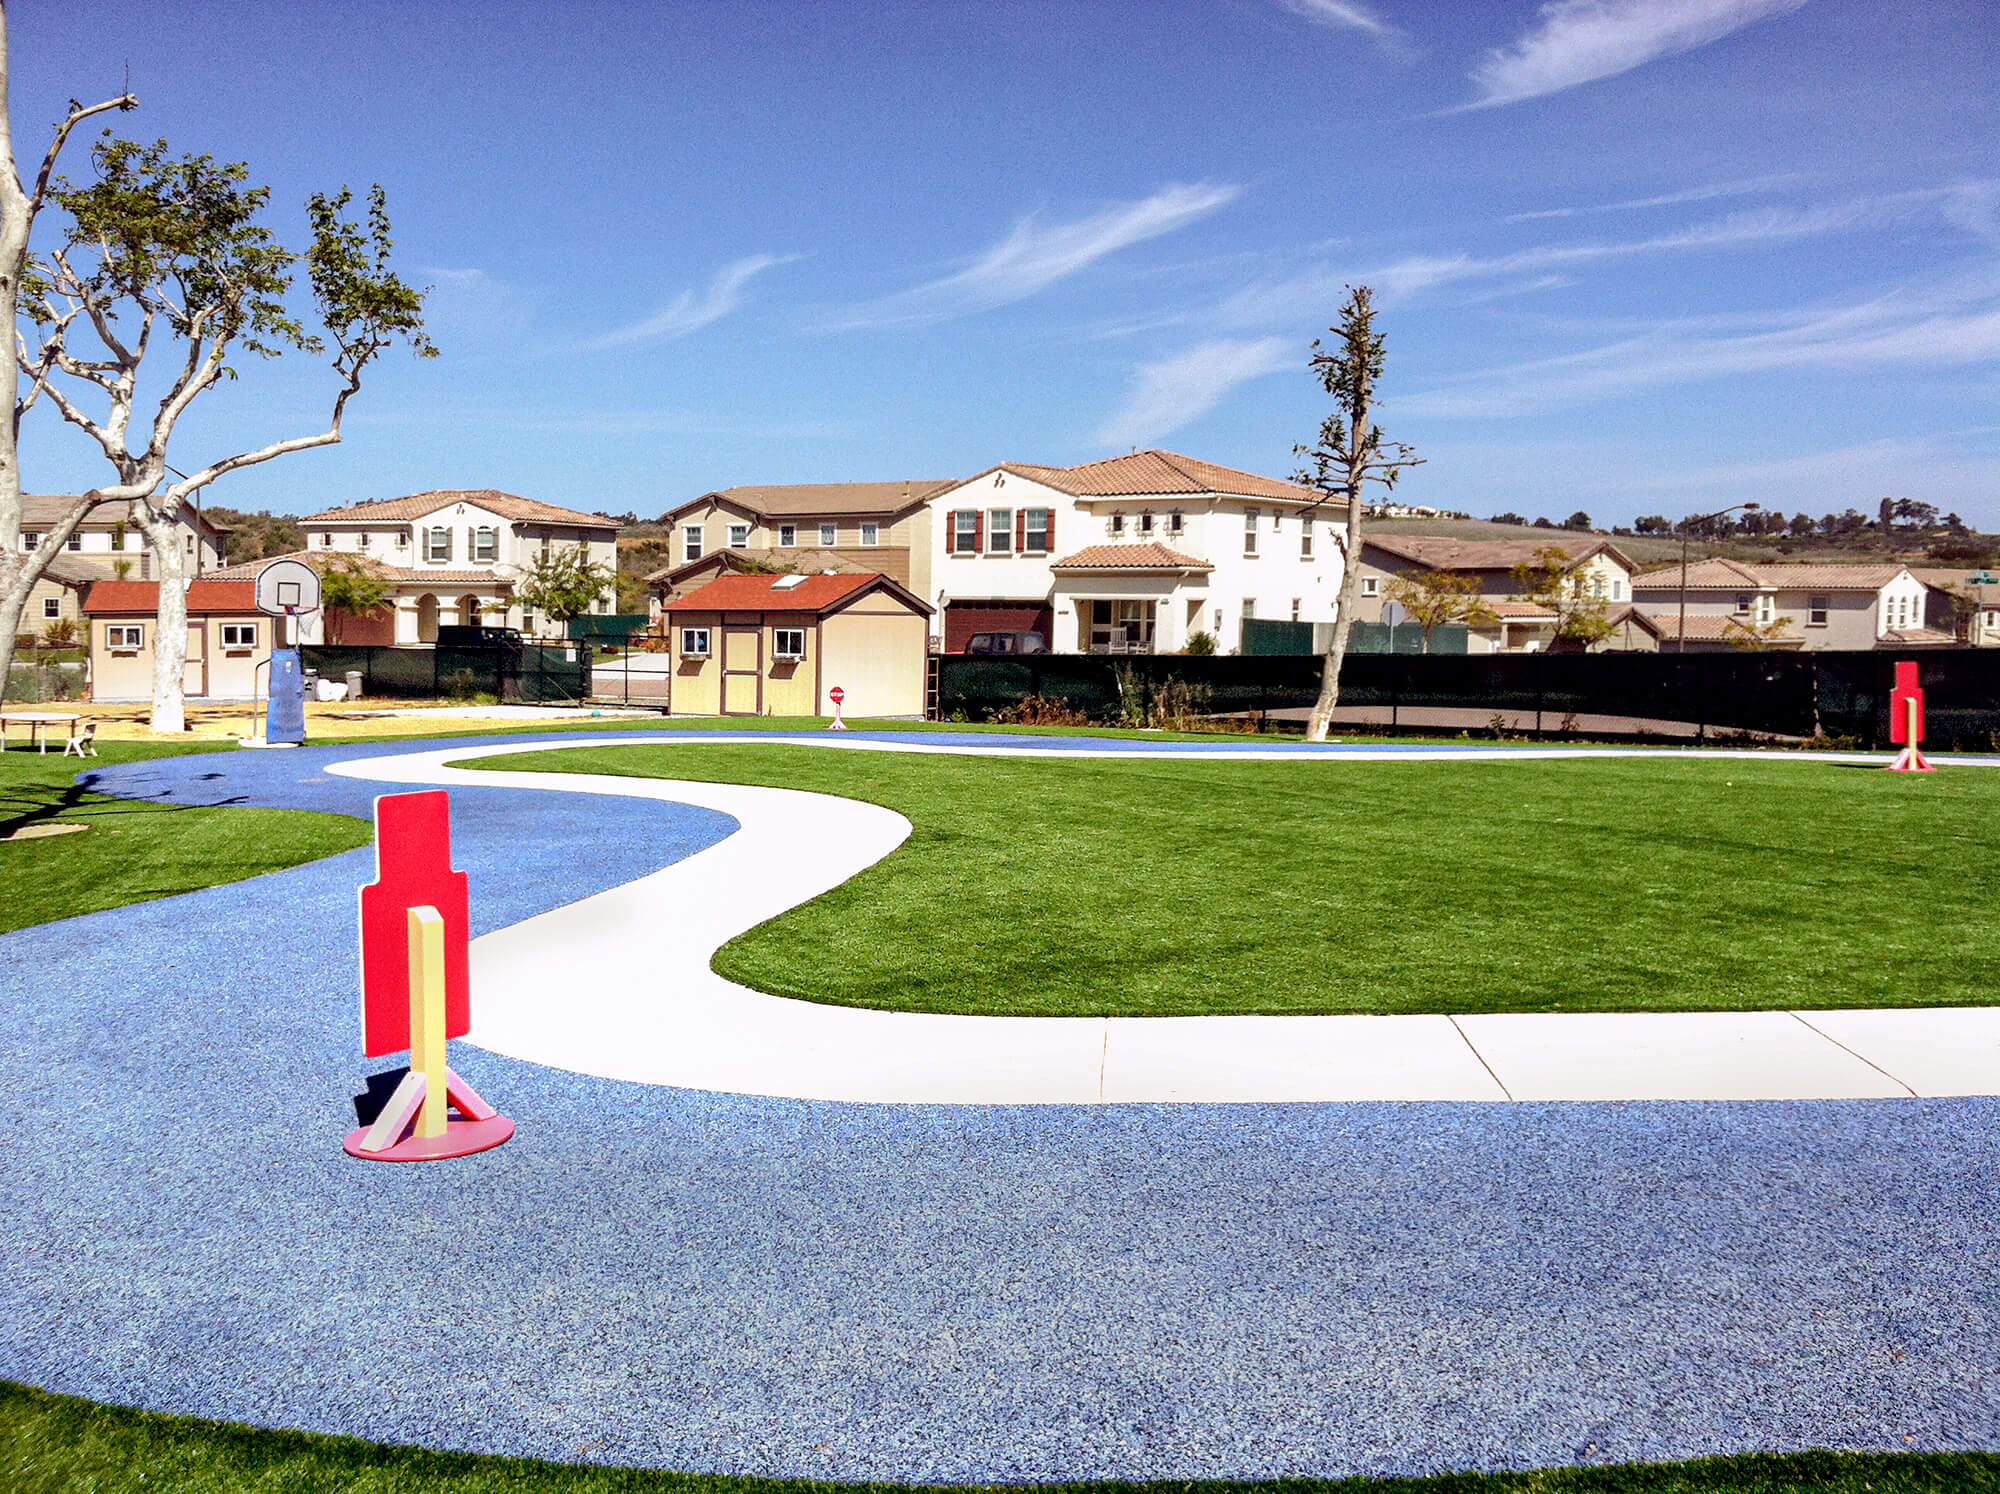 Residential kids park with artificial turf and rubber surfacing